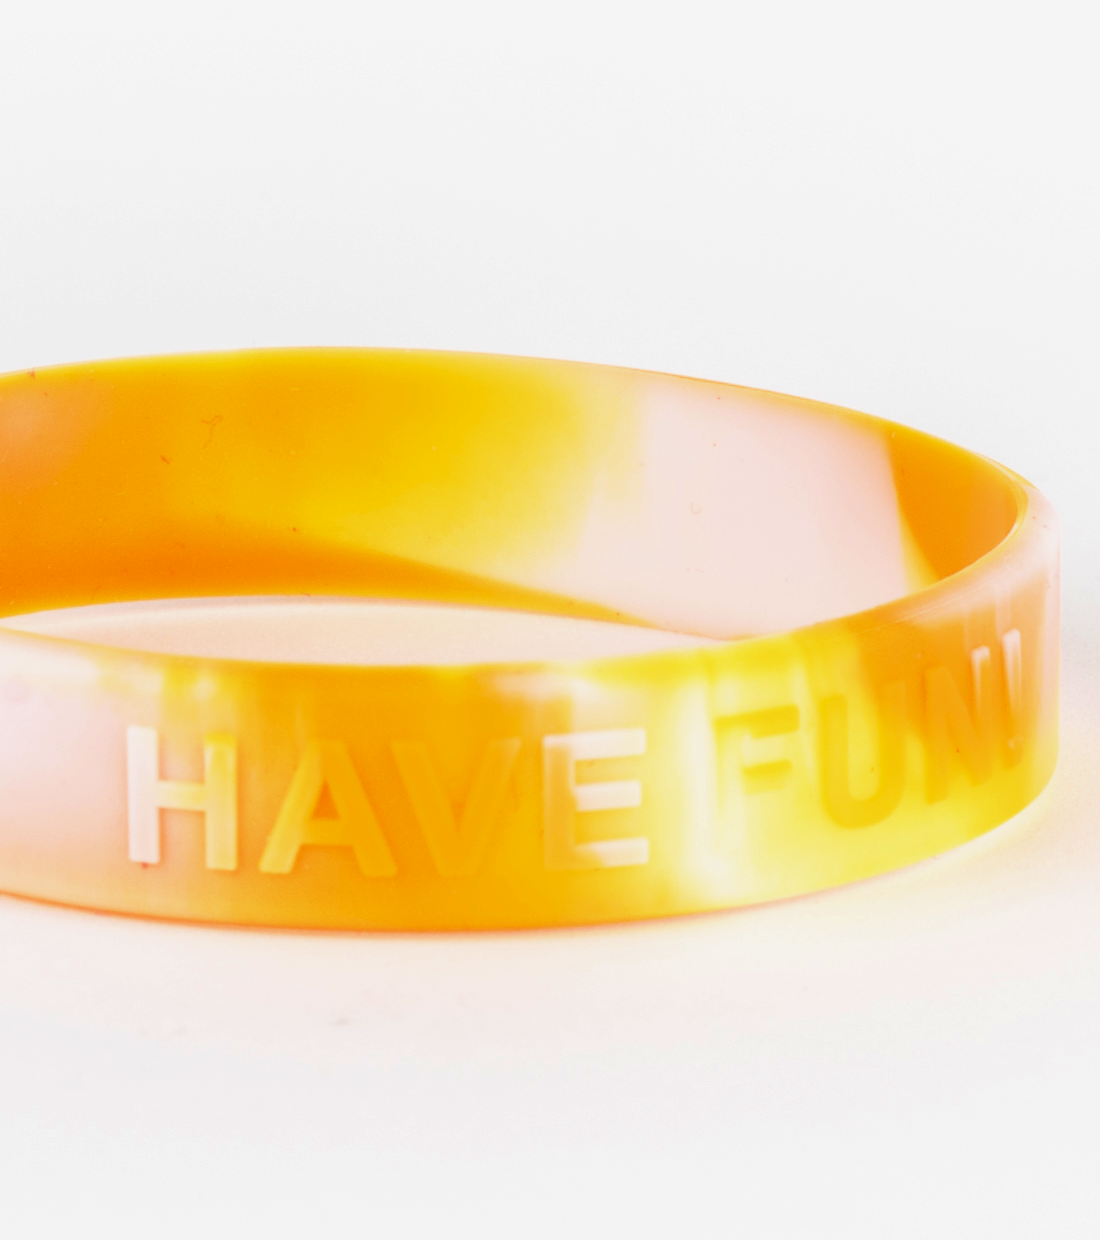 Embossed and Swirl Silicone Wristband Upclose